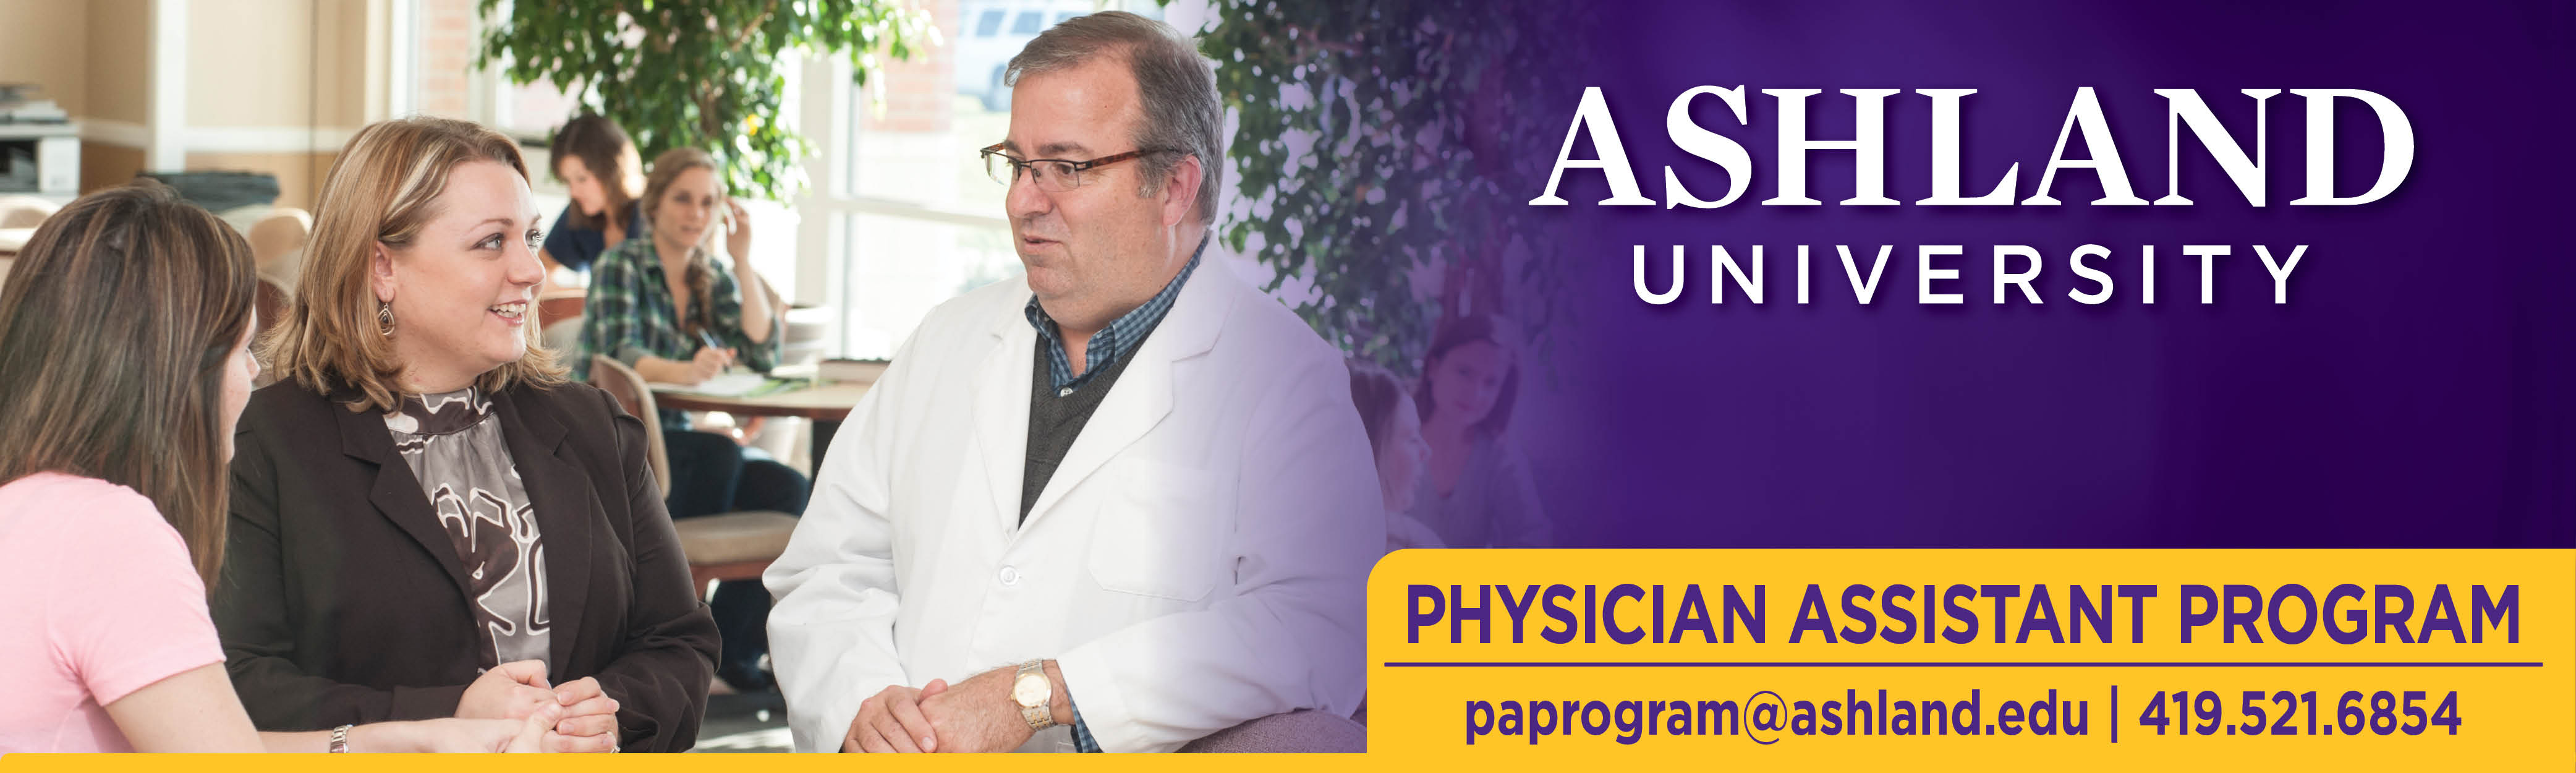 Ashland University Physician Assistant Program - email: paprogram@ashland.edu, phone: 419.521.6854